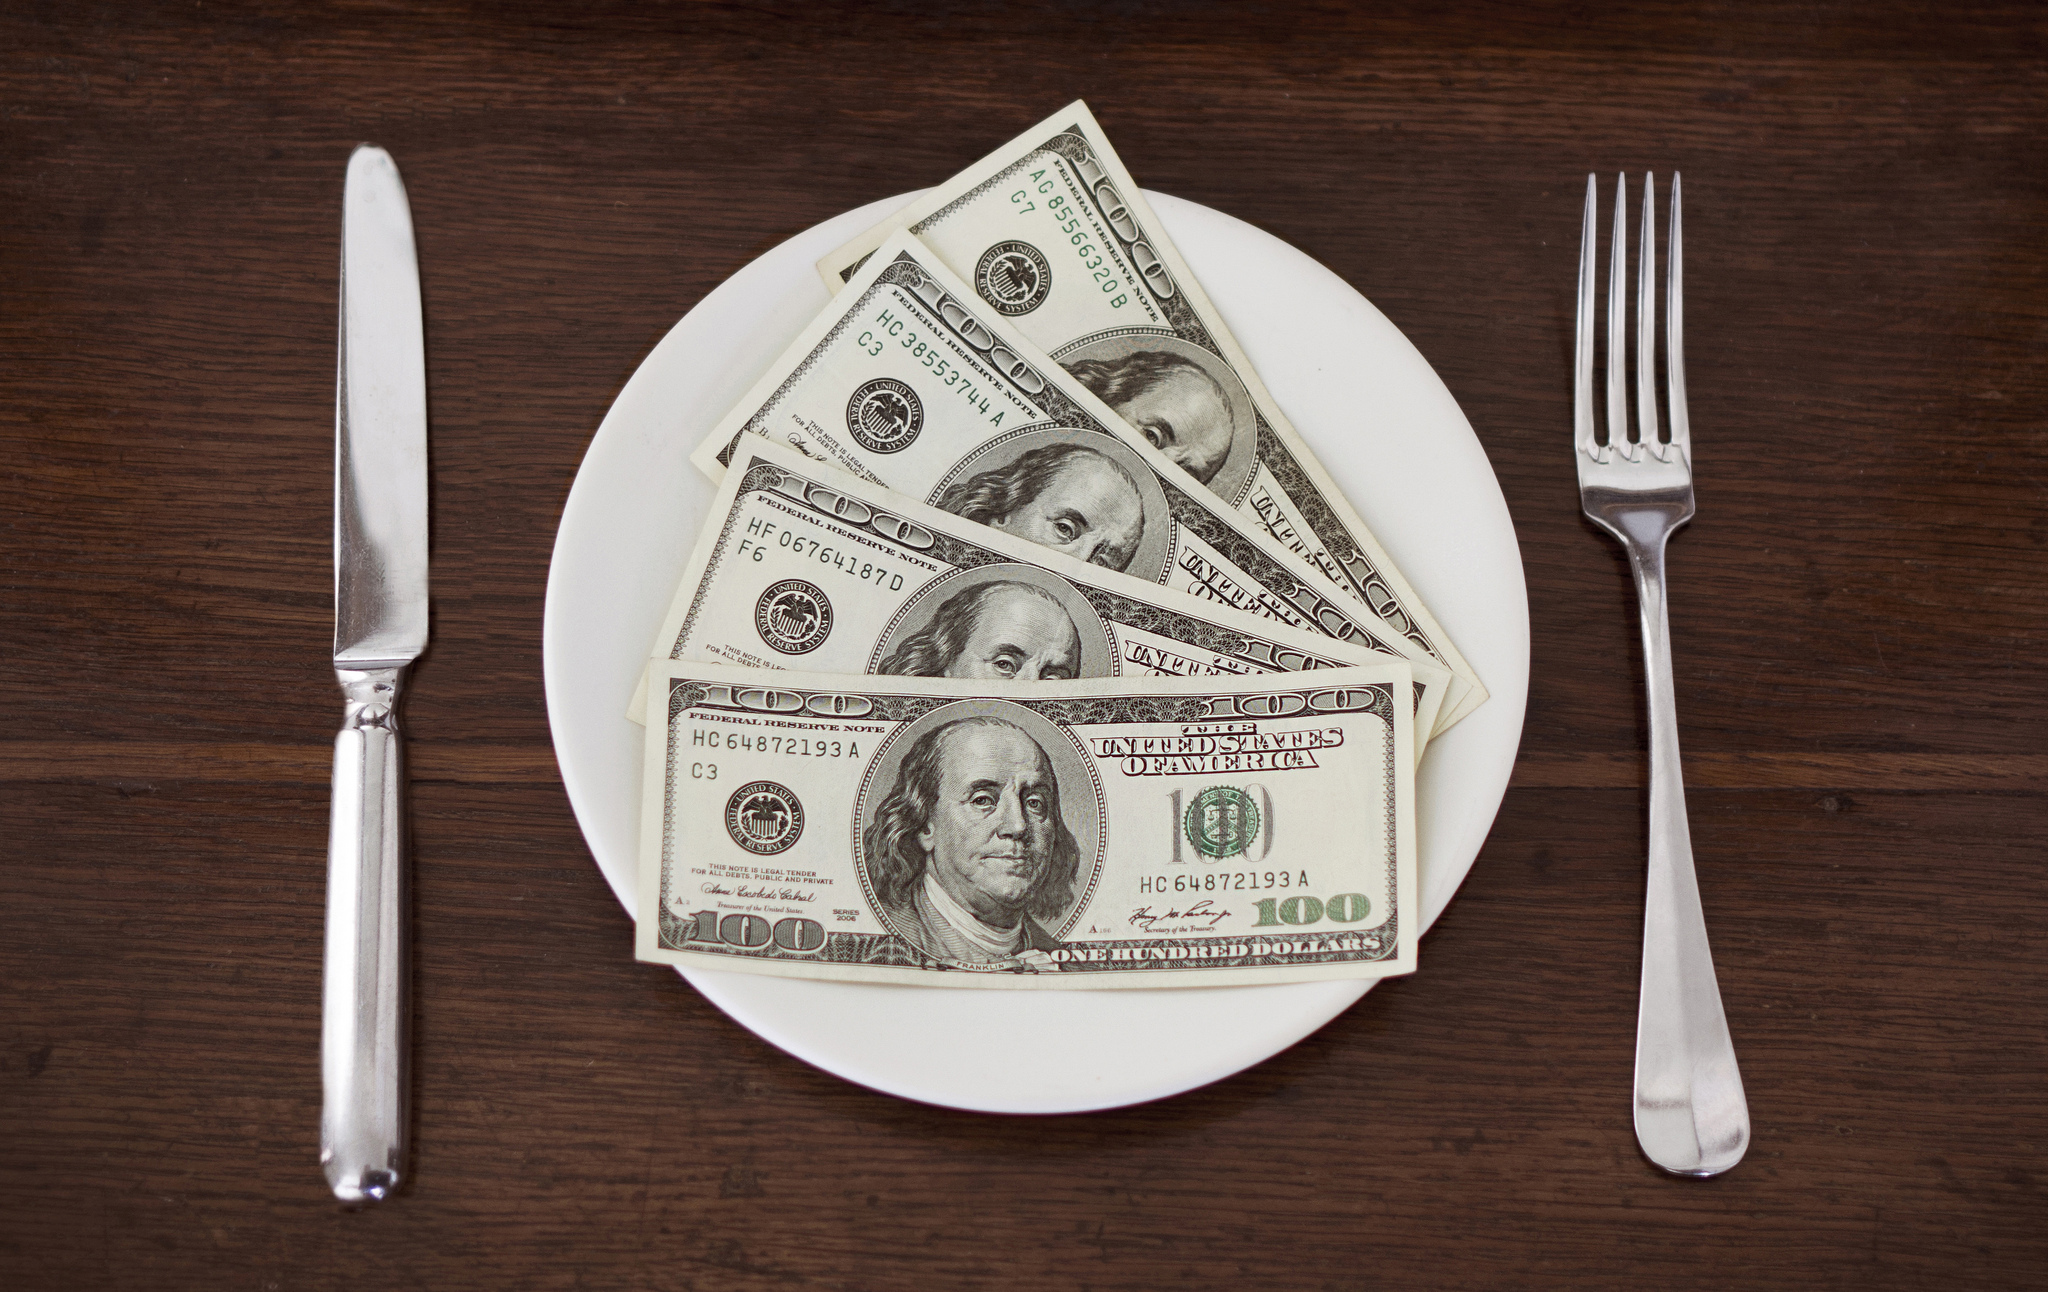 Table setting with money on the plate